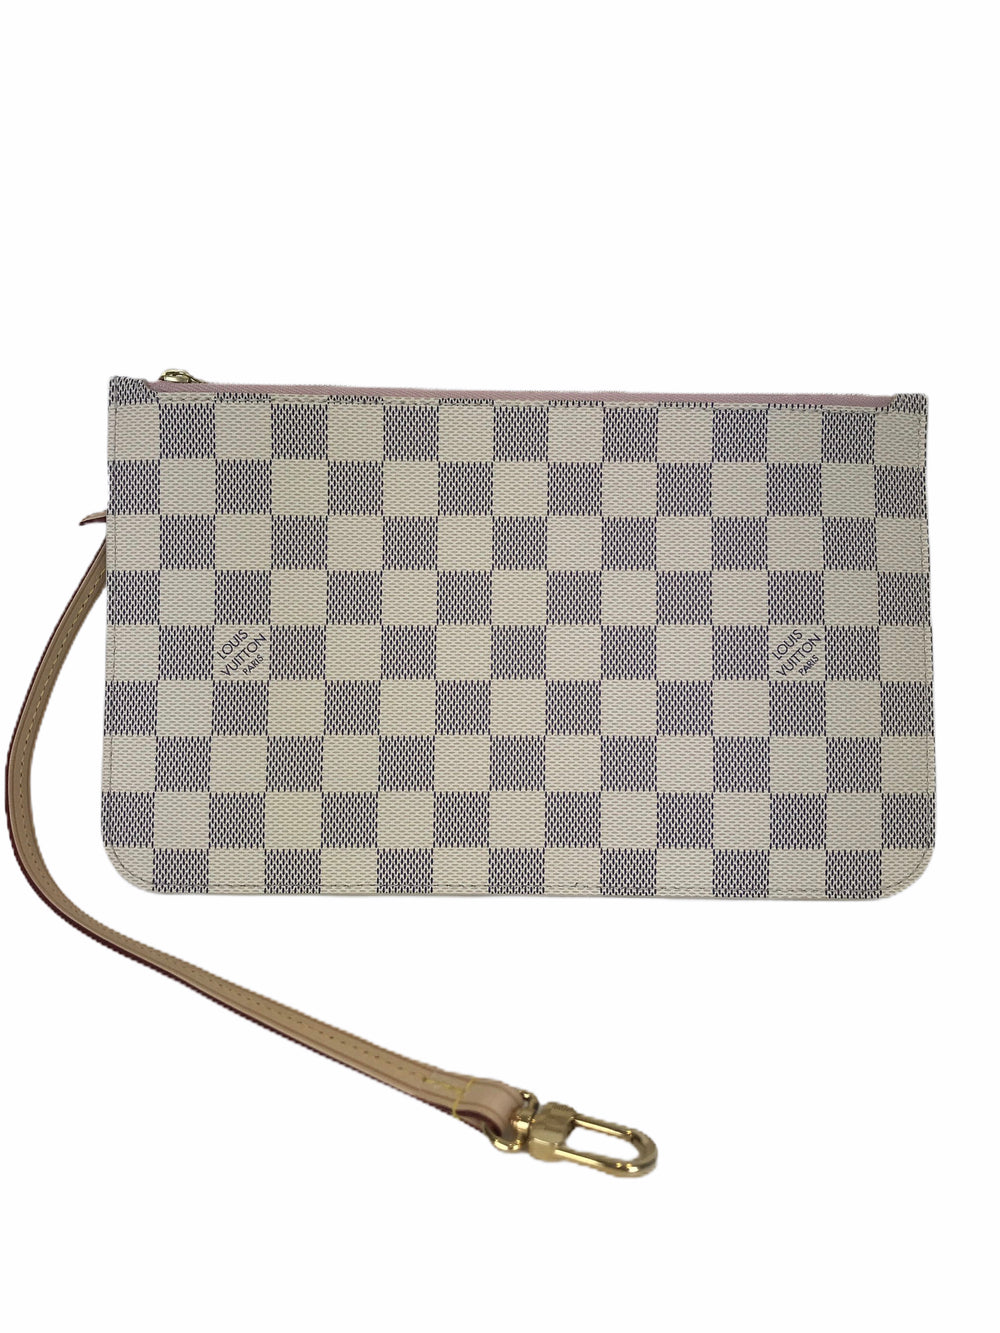 Louis Vuitton Damier Azur Pochette - - As seen on Instagram 2/08/20 - Siopaella Designer Exchange